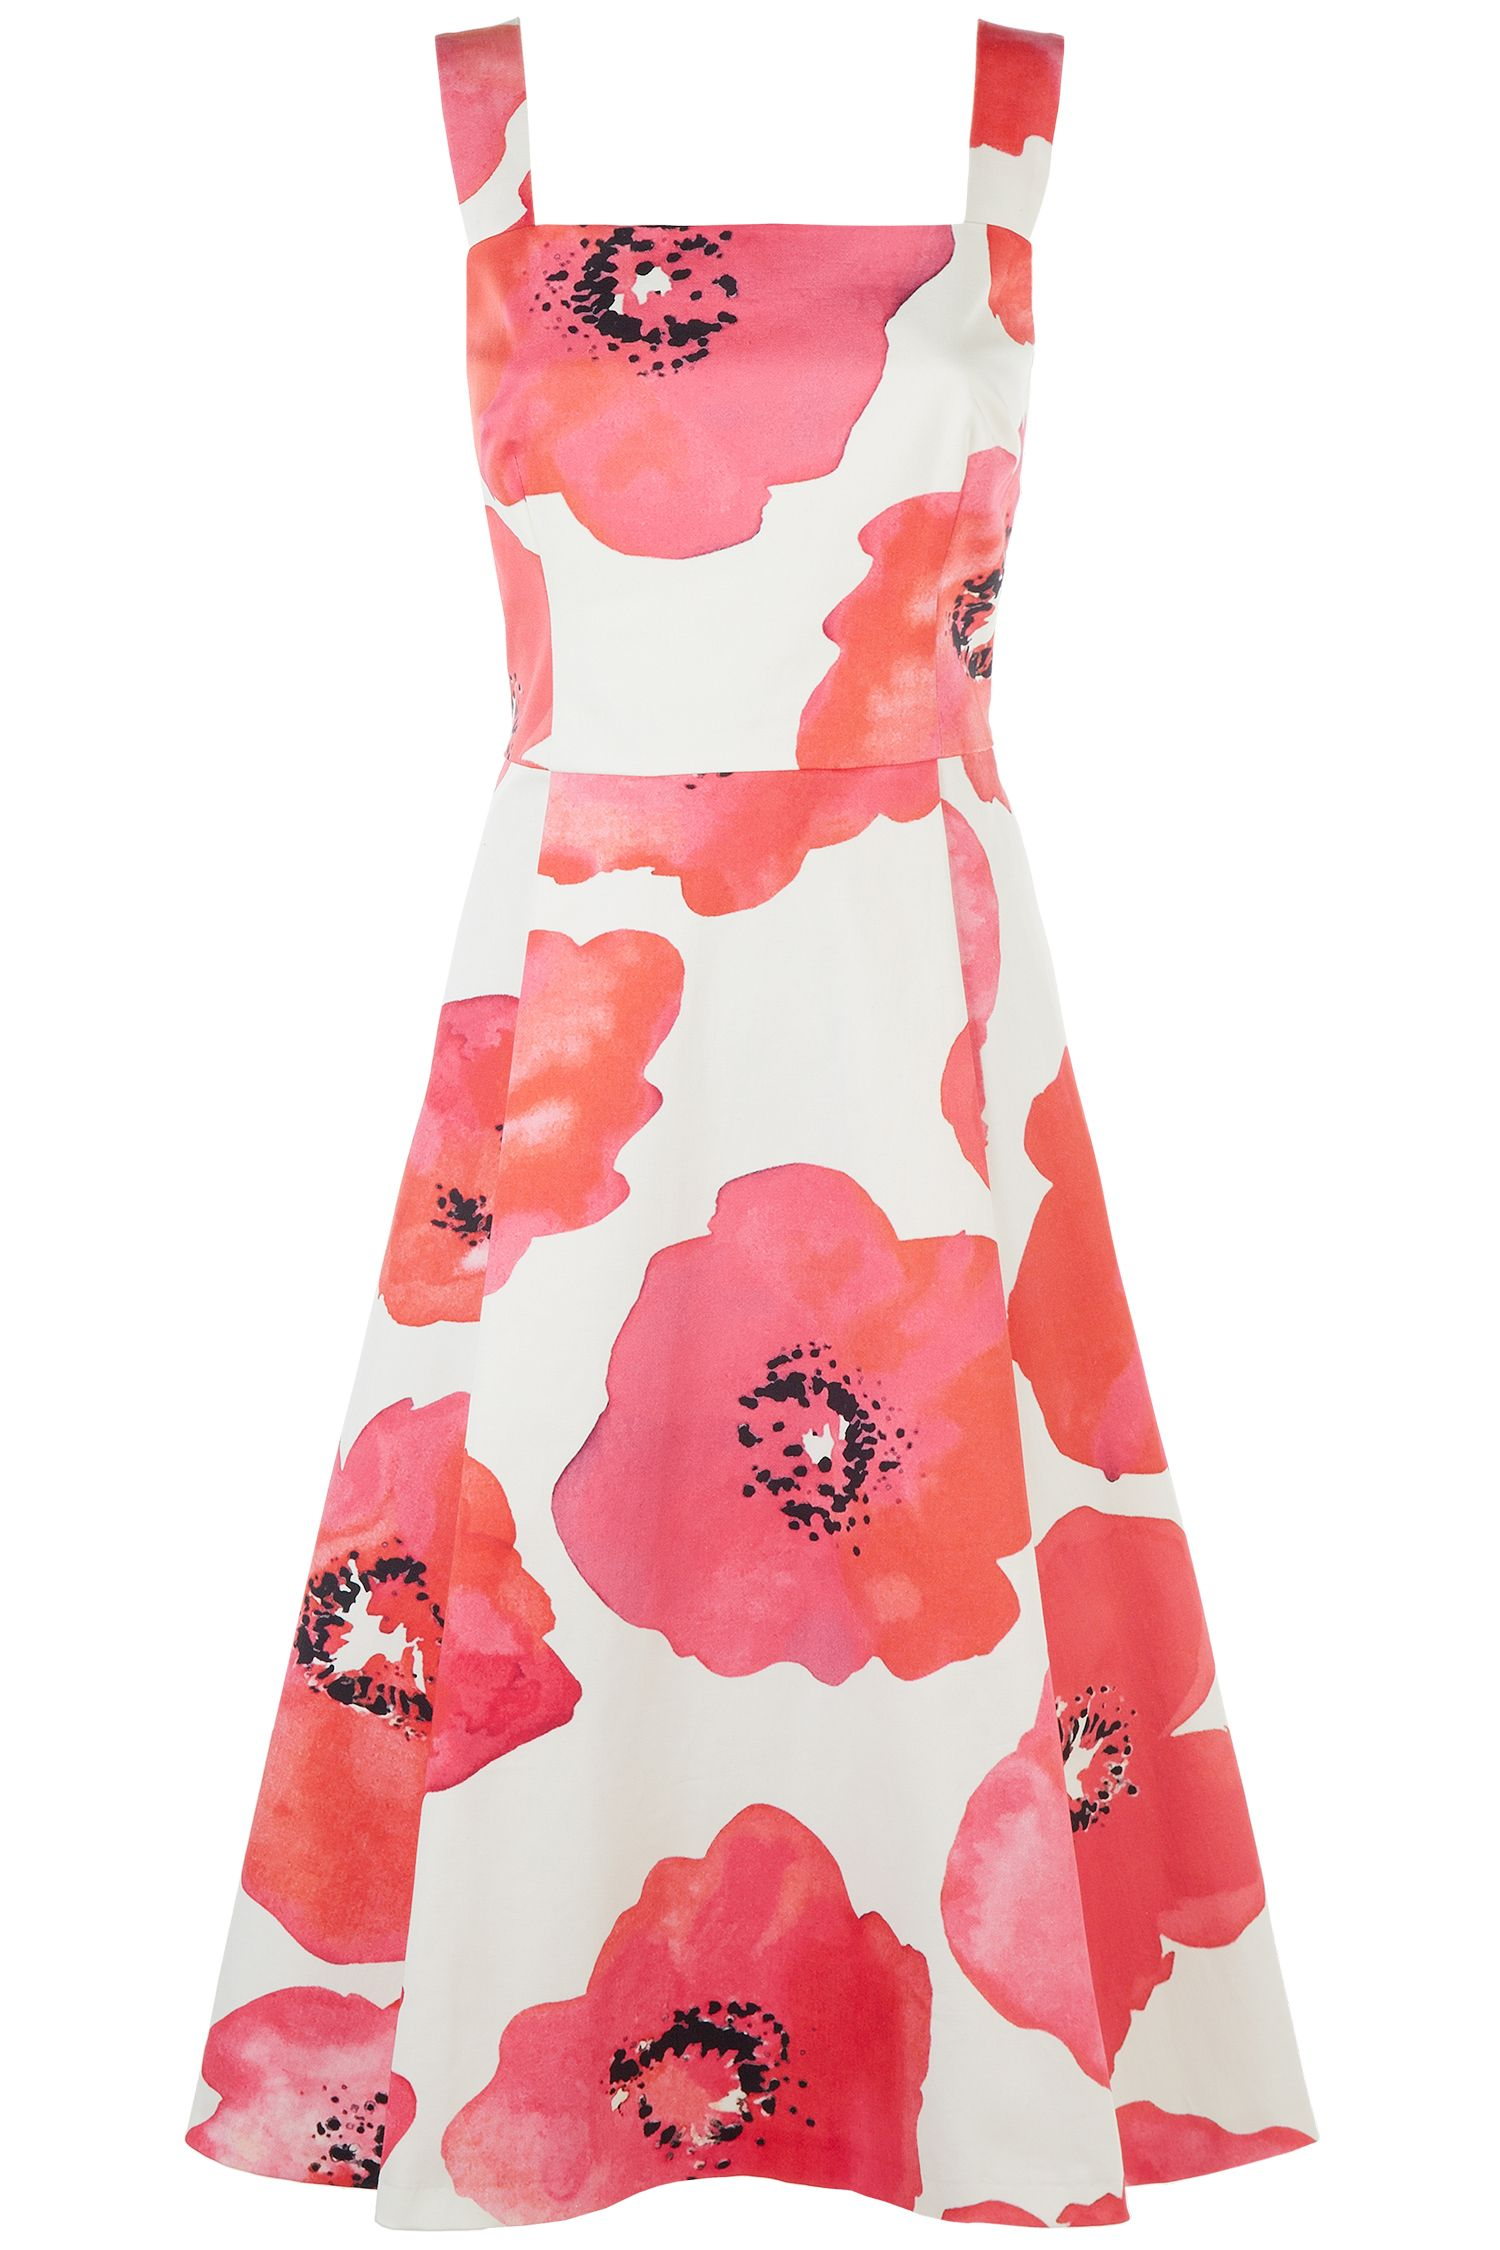 Damsel in a Dress Wild Poppy Dress, Multi-Coloured